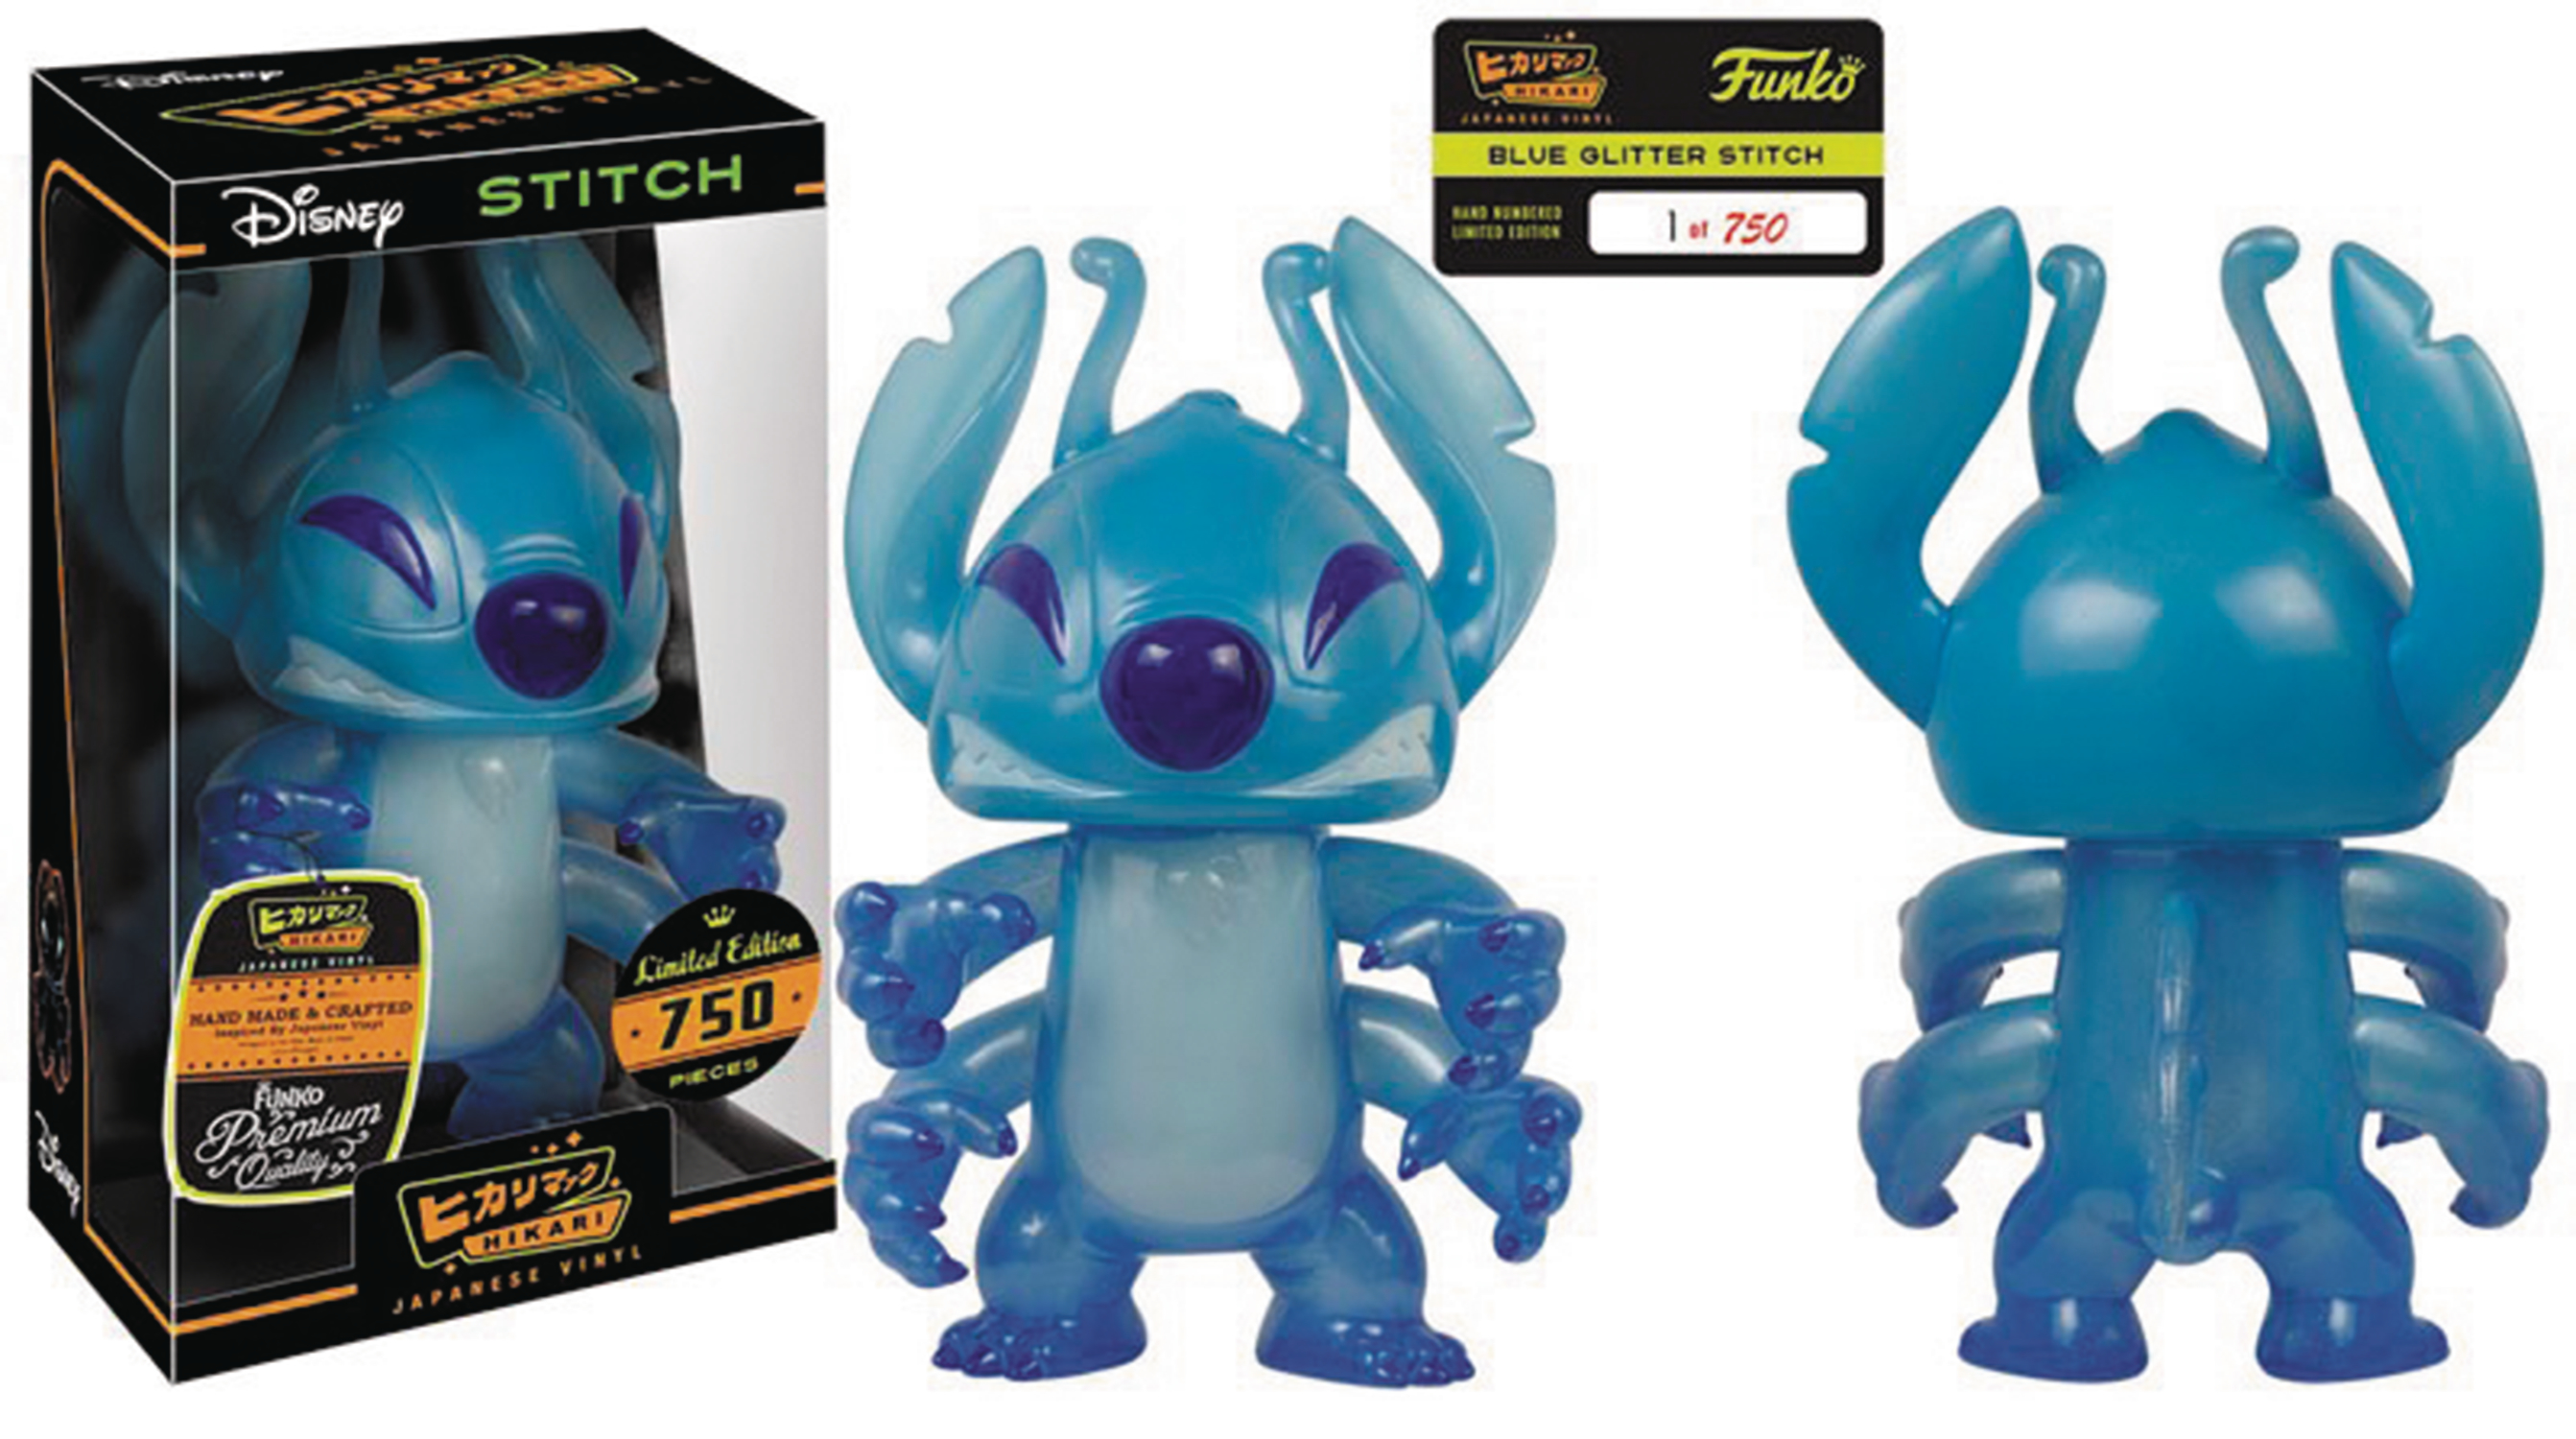 HIKARI DISNEY BLUE GLITTER STITCH LIMITED ED SOFUBI FIG